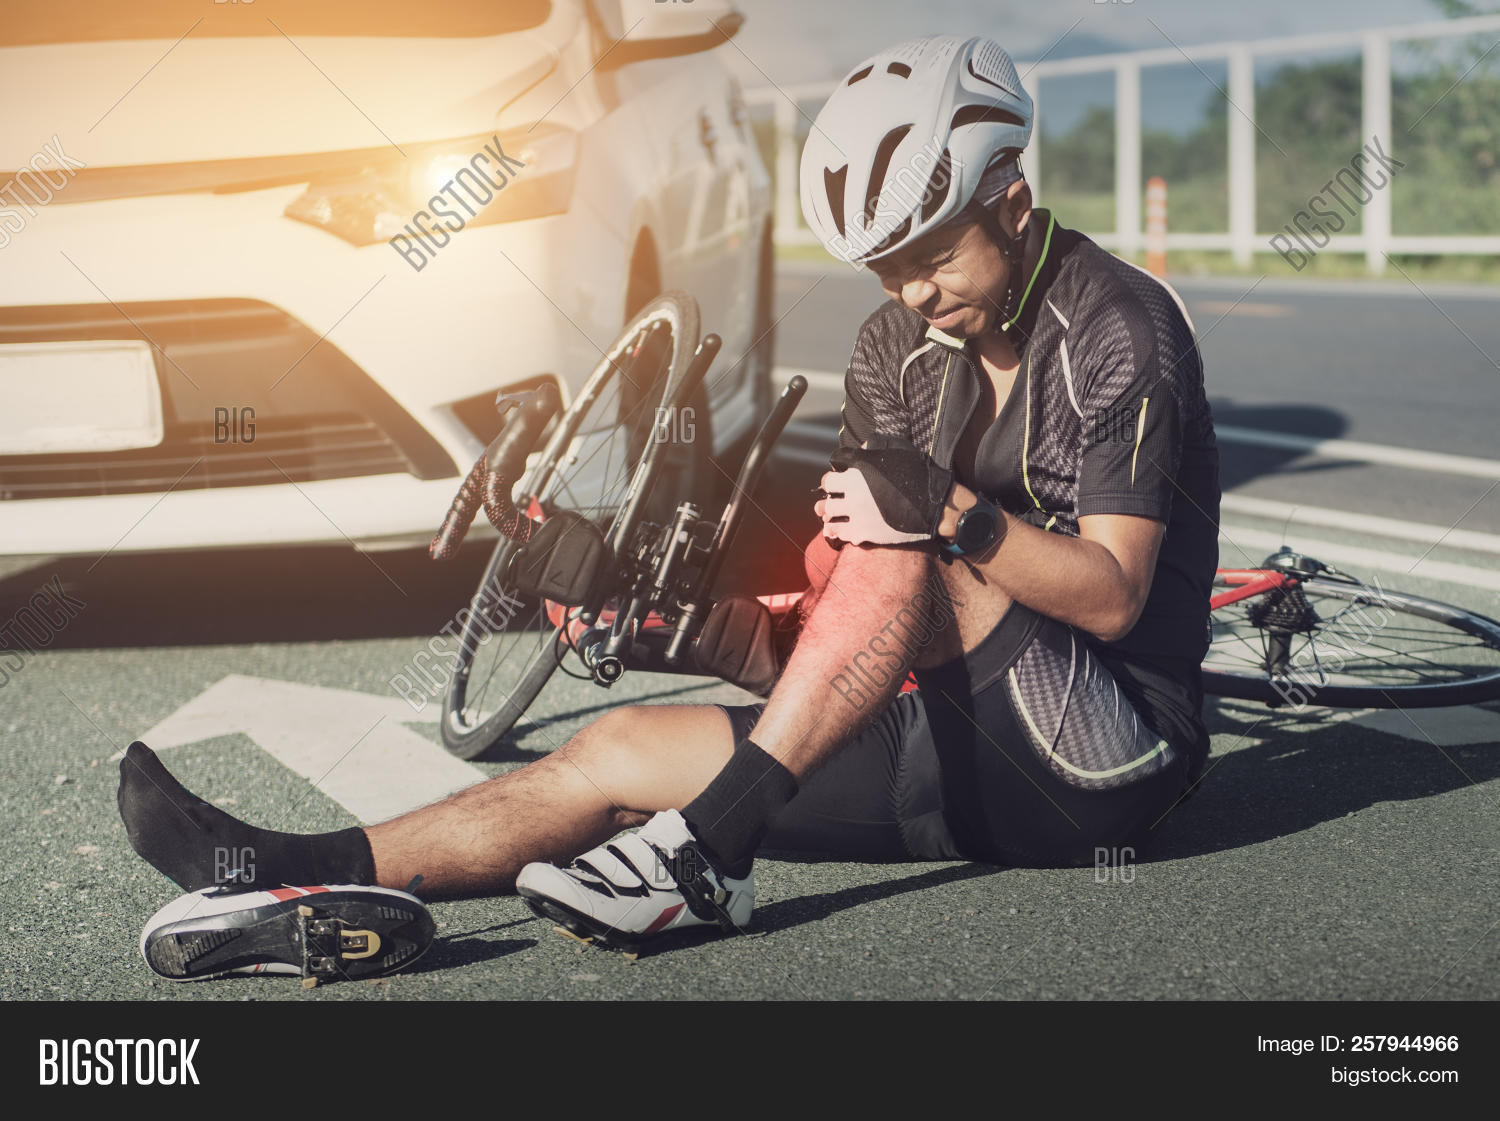 accident,aid,asia,asphalt,background,bicycle,bicyclist,bike,biker,biking,black,boy,broken,car,collision,crash,cycling,cyclist,damage,dangerous,dawn,drive,driver,drunk,emergency,exercise,fast,first,helmet,injured,injury,insurance,man,people,person,race,rescue,ride,rider,road,speed,sports,street,traffic,transportation,vehicle,young